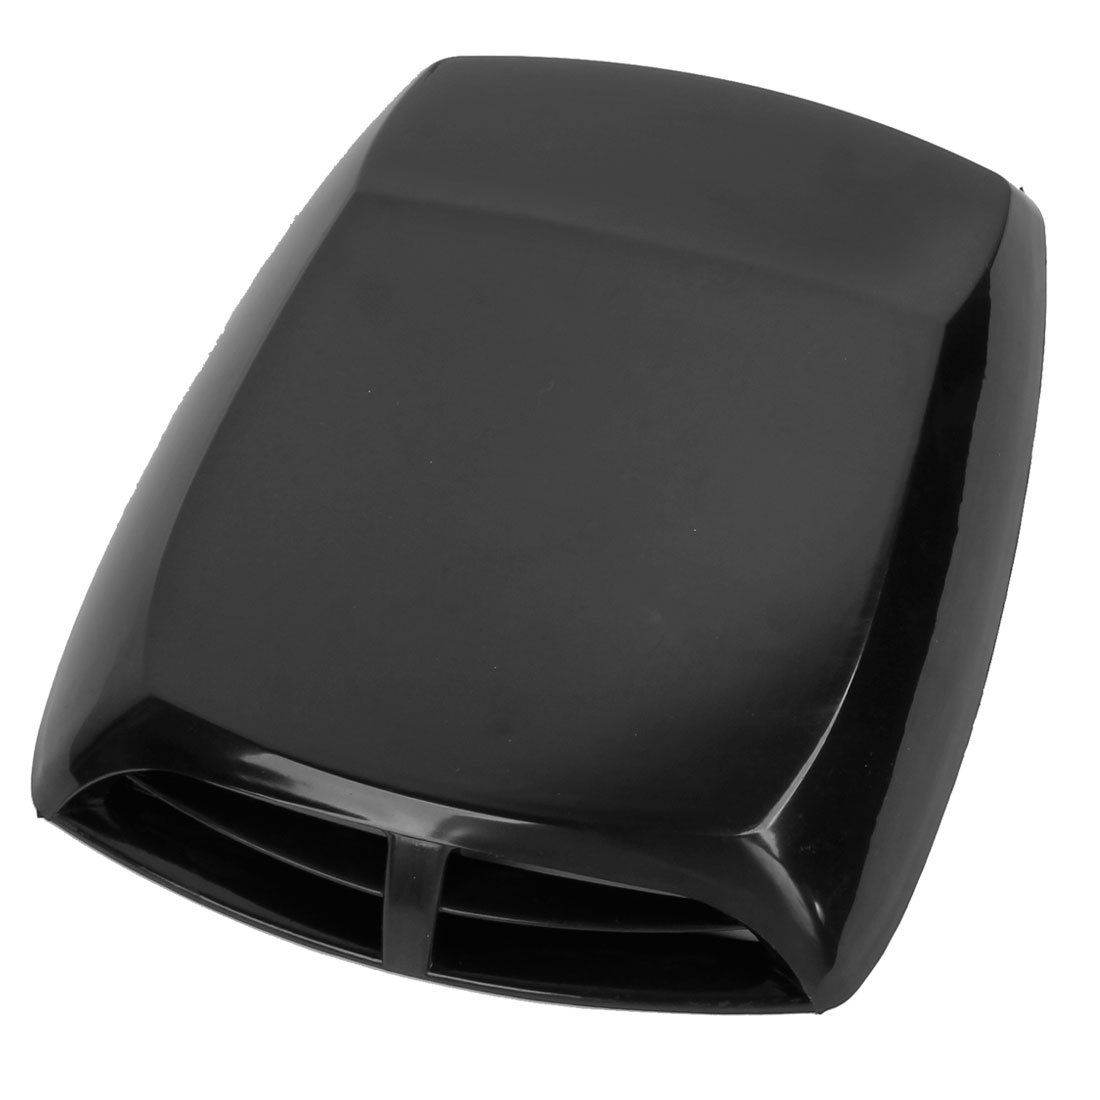 sourcingmap® Universal Car Air Flow Intake Scoop Turbo Bonnet Vent Cover Hood Black sourcing map a14022700ux0797